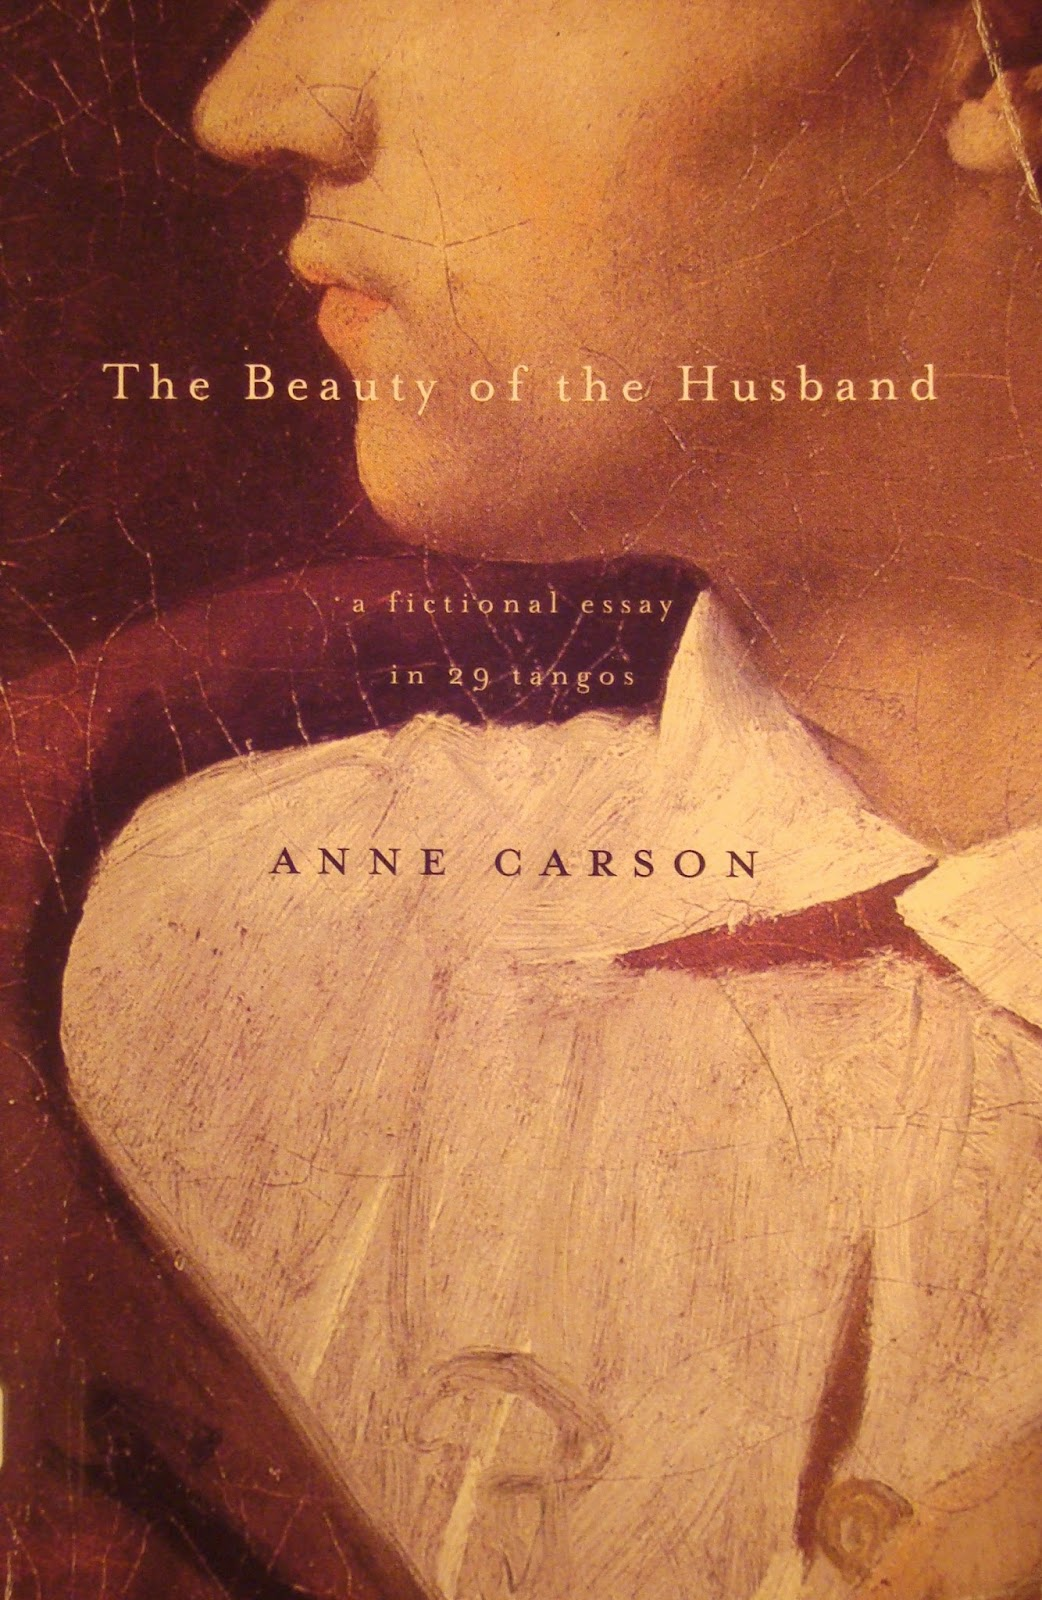 http://www.randomhouse.co.uk/editions/the-beauty-of-the-husband/9780224061308